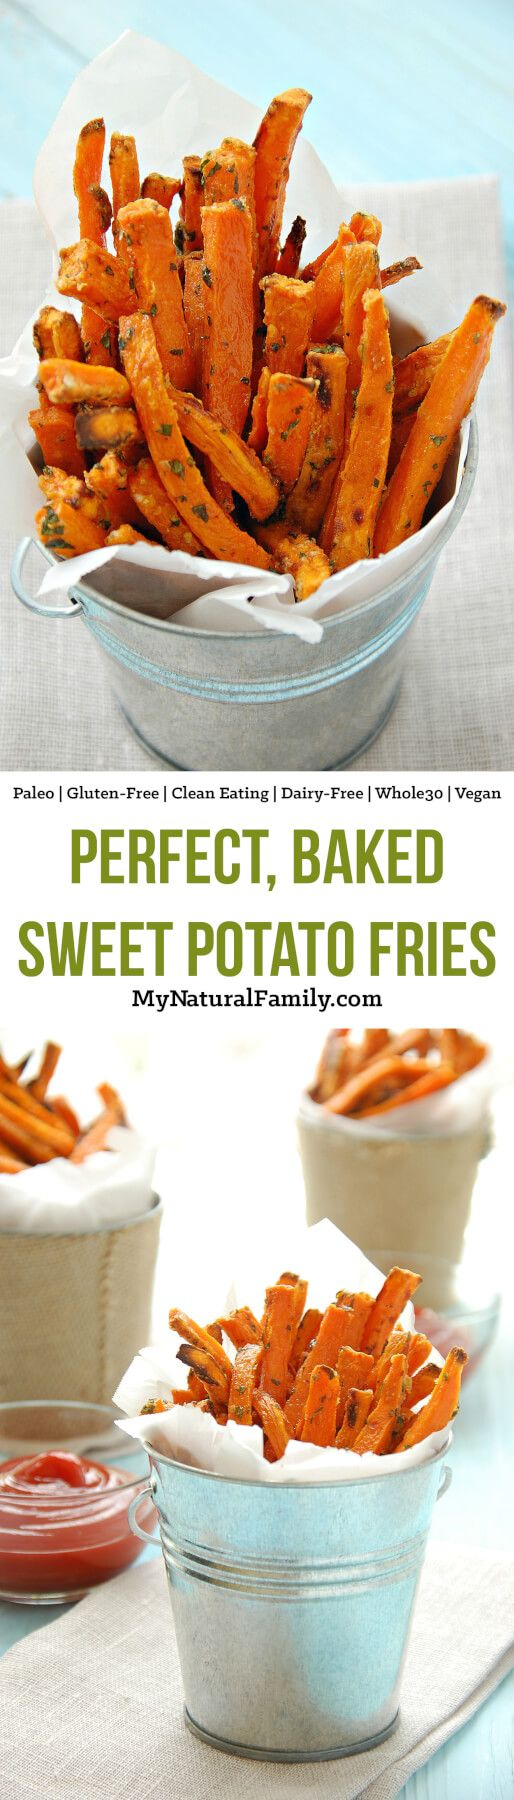 Perfect, Baked Sweet Potato Fries Recipe {Paleo, Clean Eating, Gluten-Free, Dairy-Free, Vegan, Whole30}